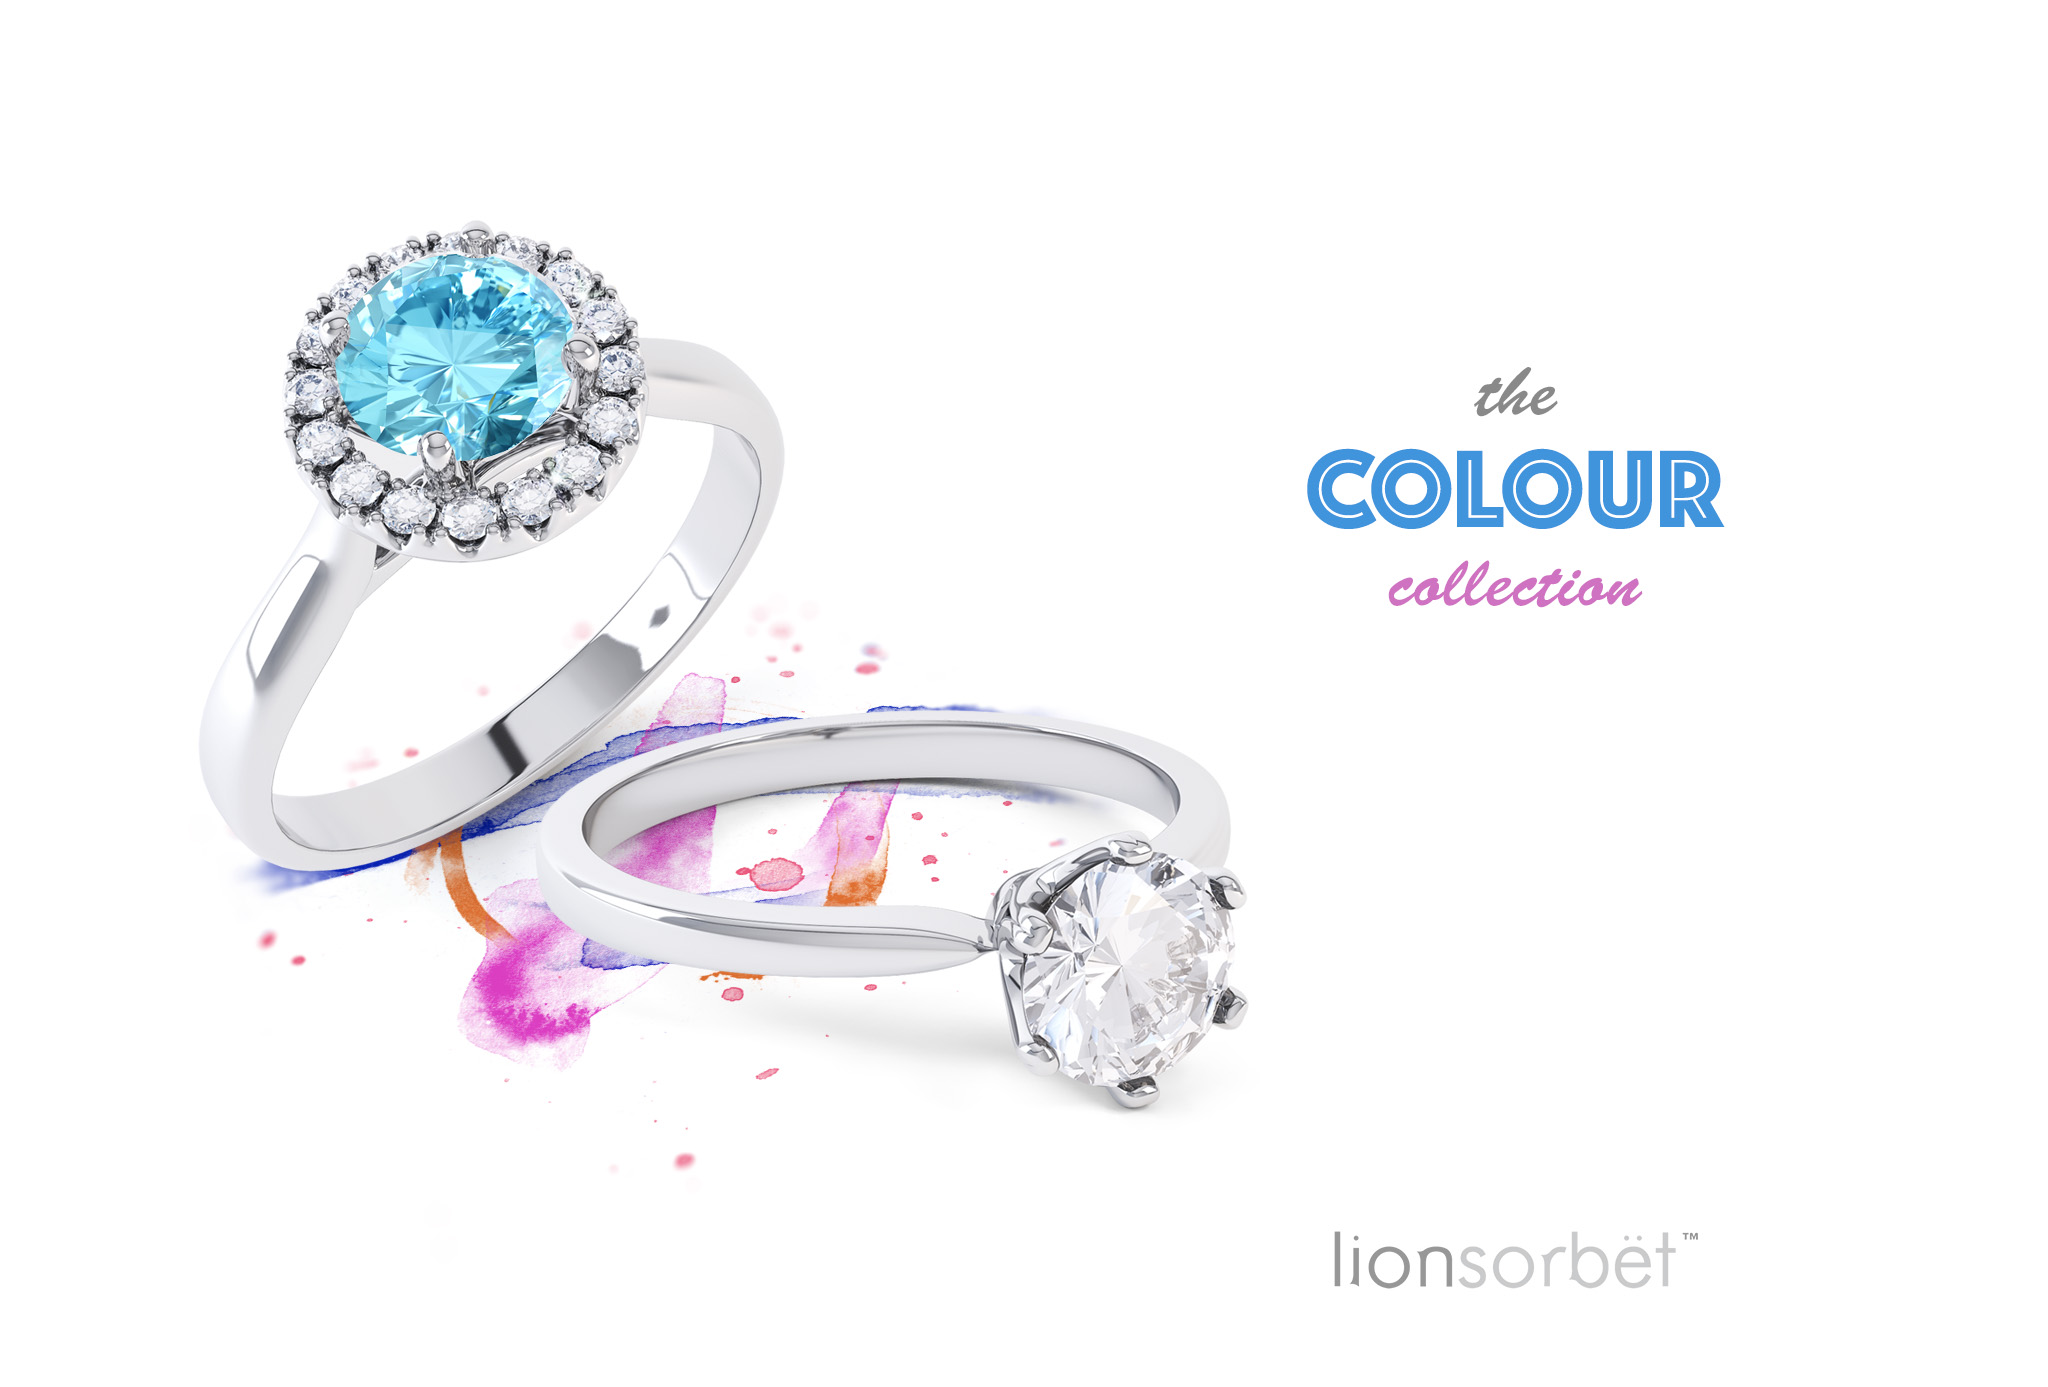 Lionsorbet_colour_collection.jpg